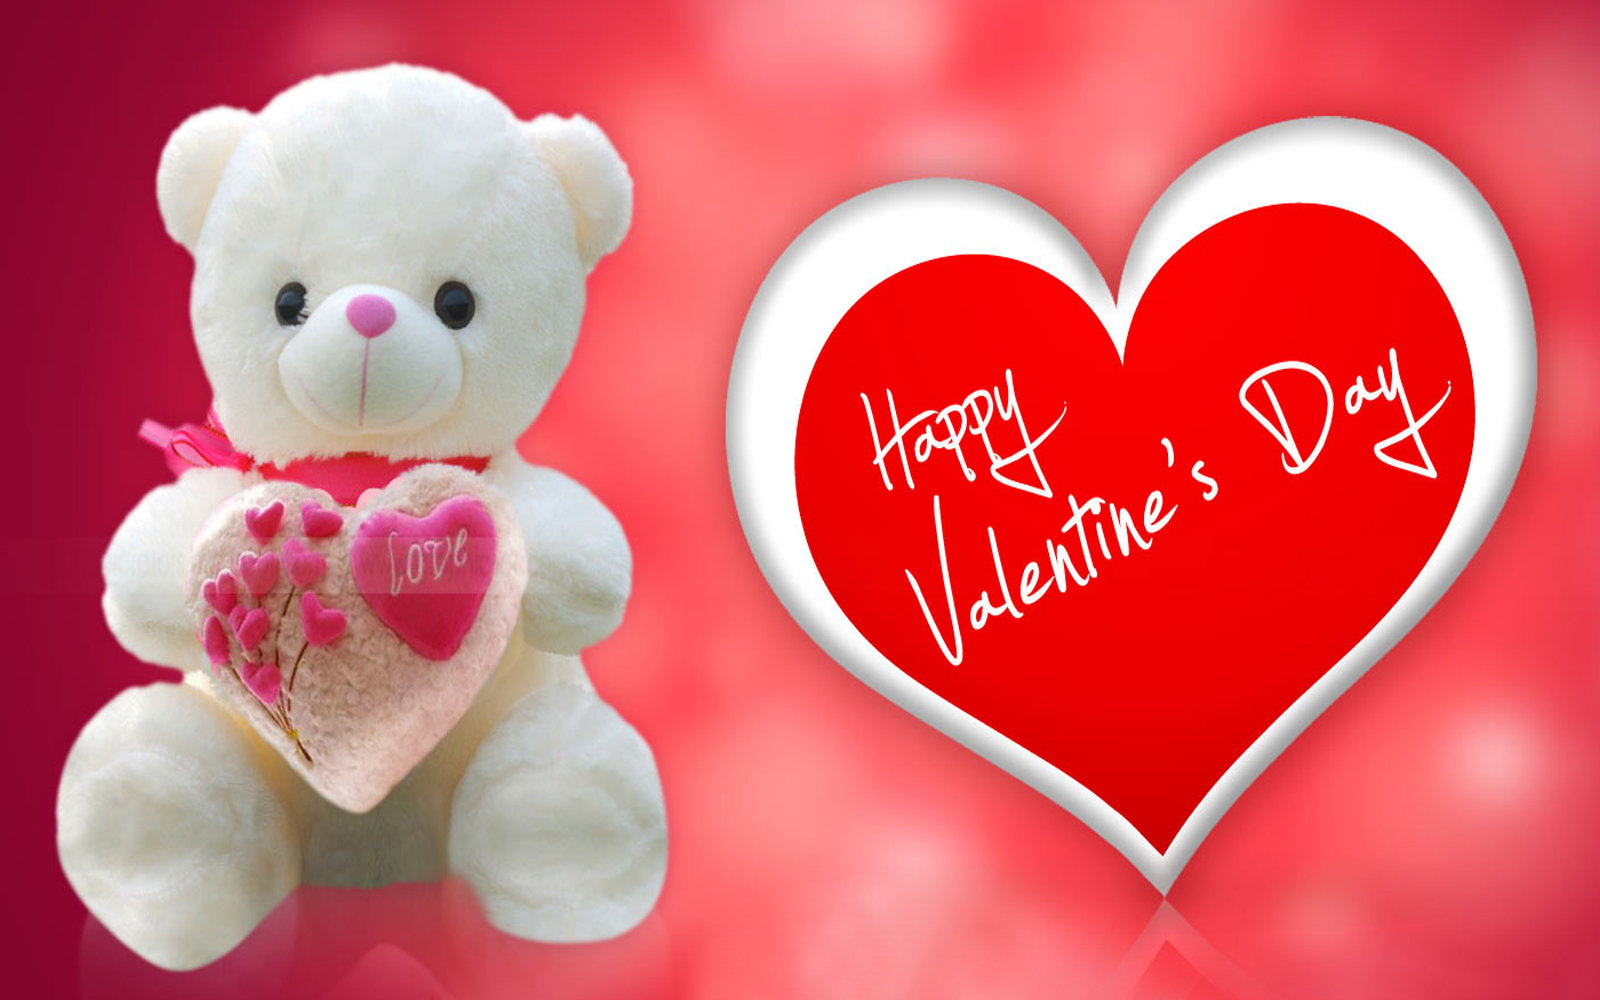 Happy Valentines Day Images, HD Wallpapers, Photos & Pics